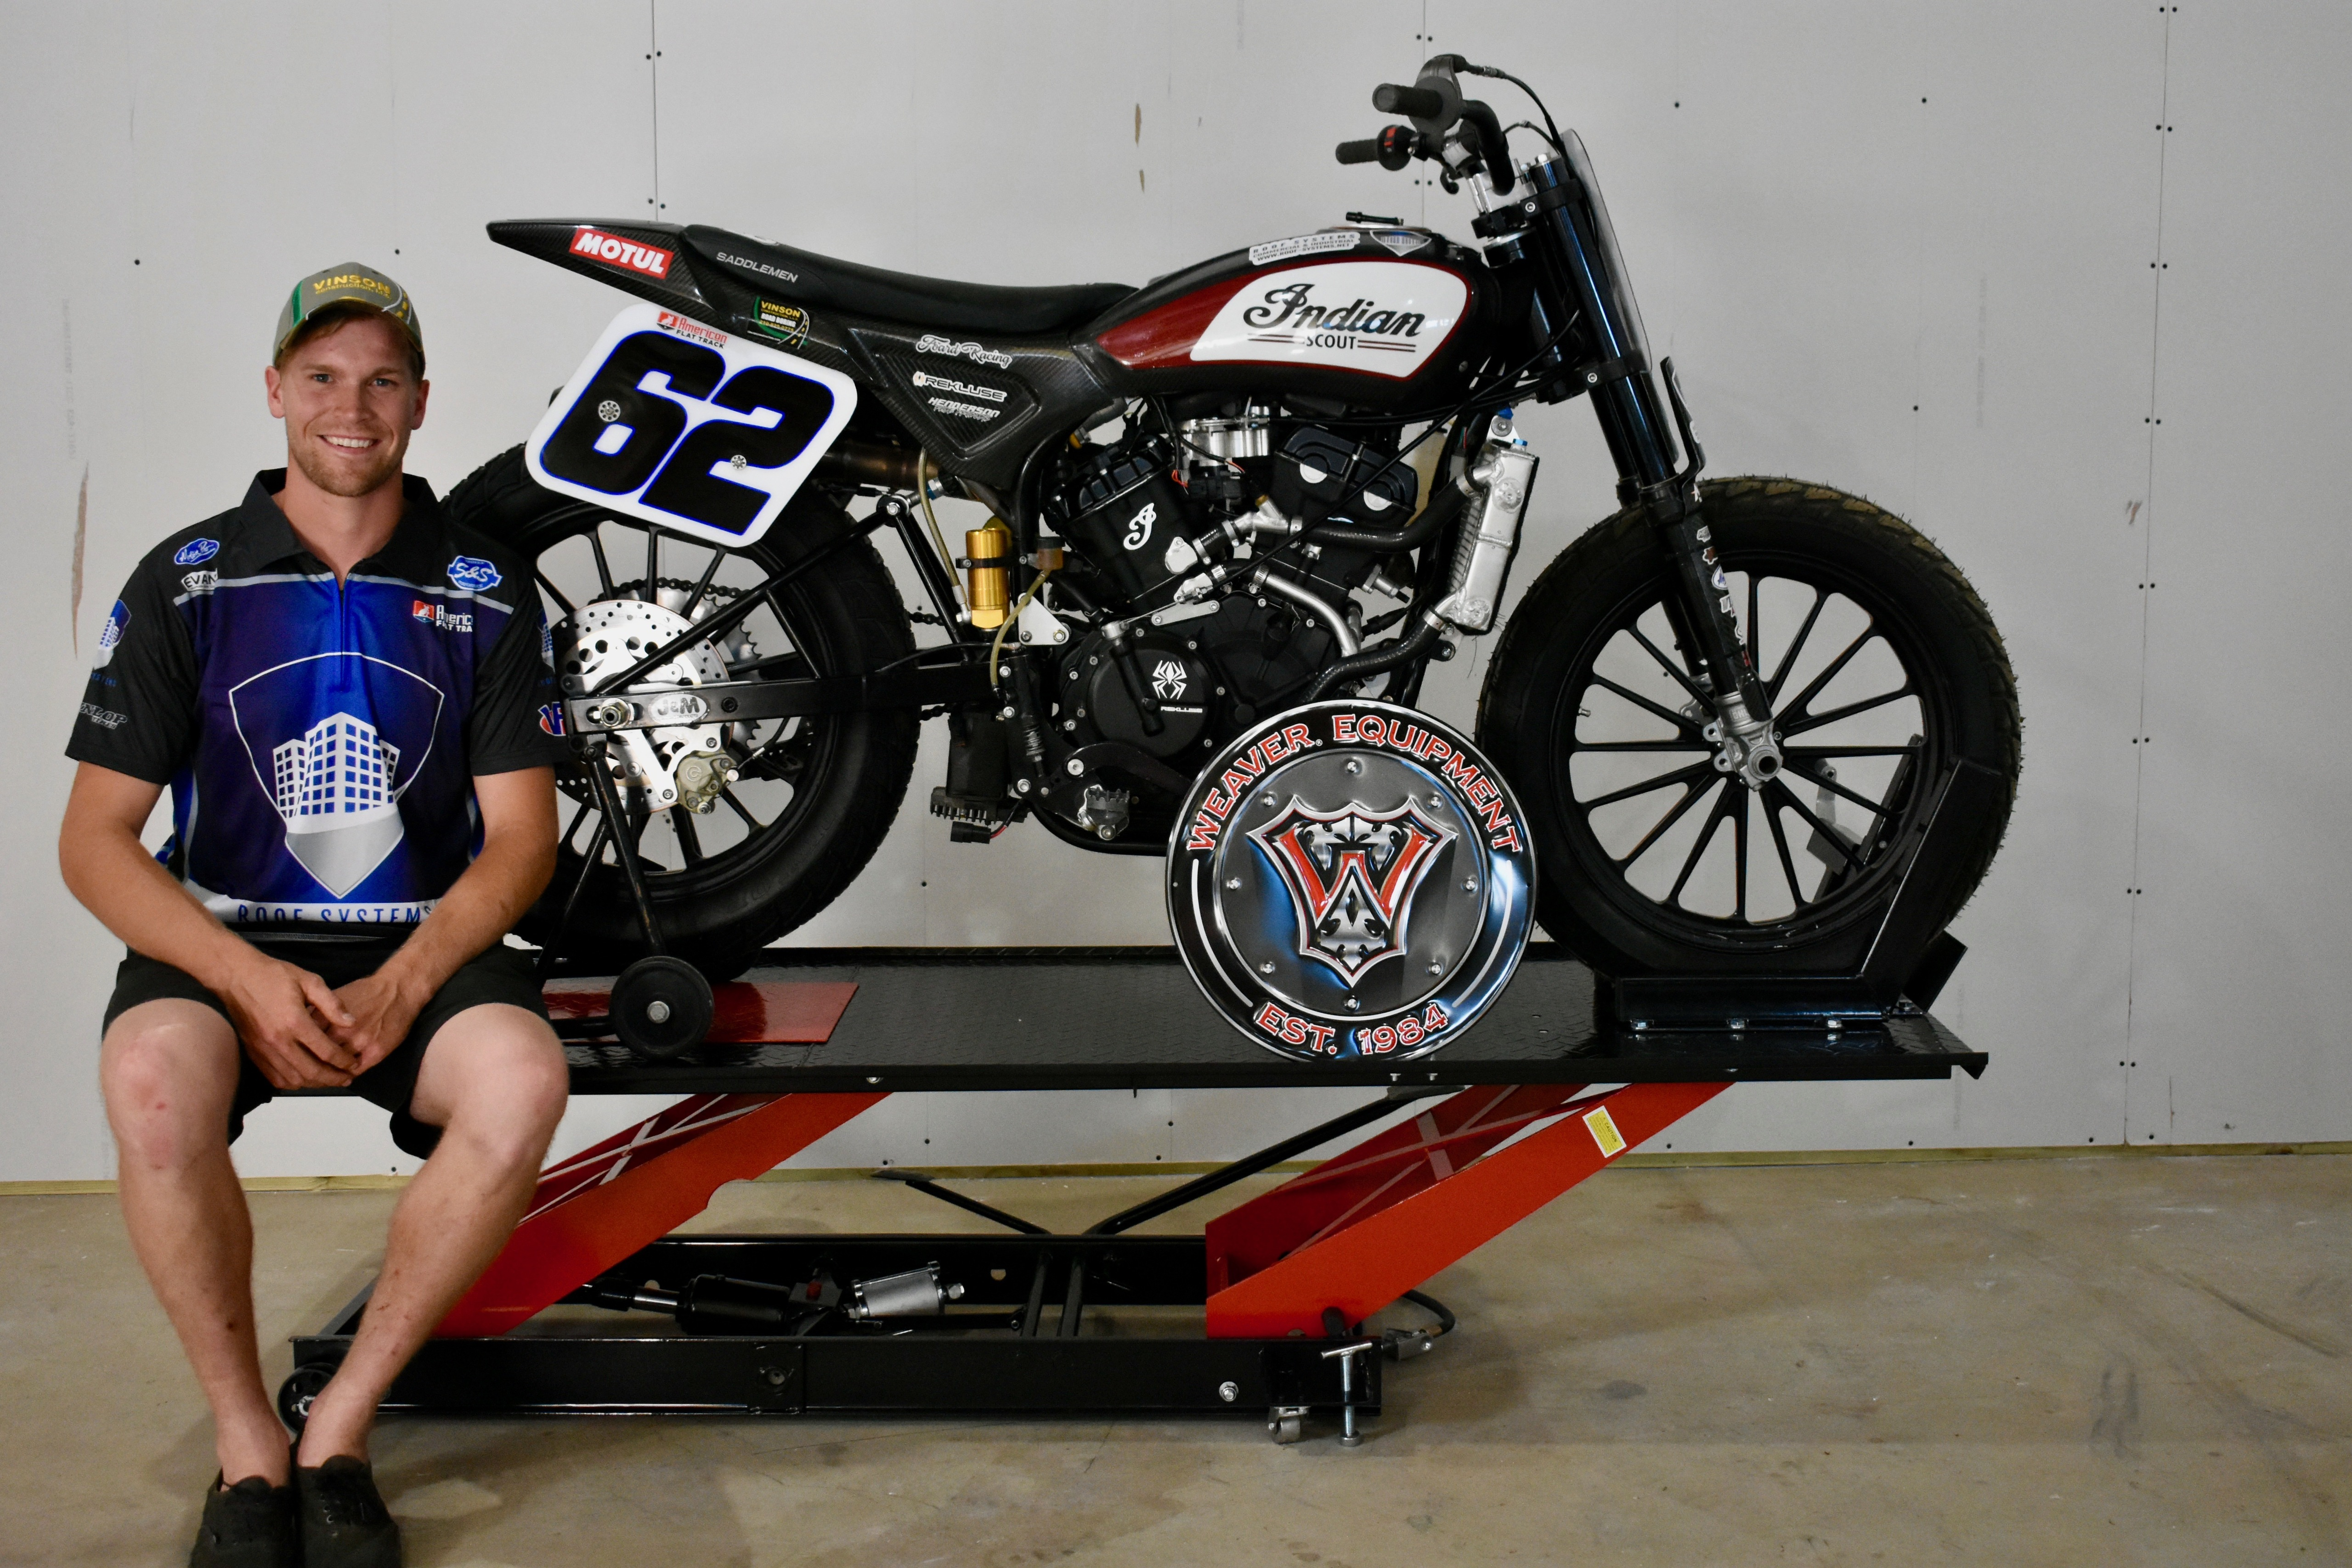 """""""Third-generation racer Dan Bromley ranks as one of the most consistent performers in the American Flat Track paddock regardless of class. That consistency carried him to the 2018 AFT Singles championship and brought him to within ten points of successfully defending his crown in 2019."""""""